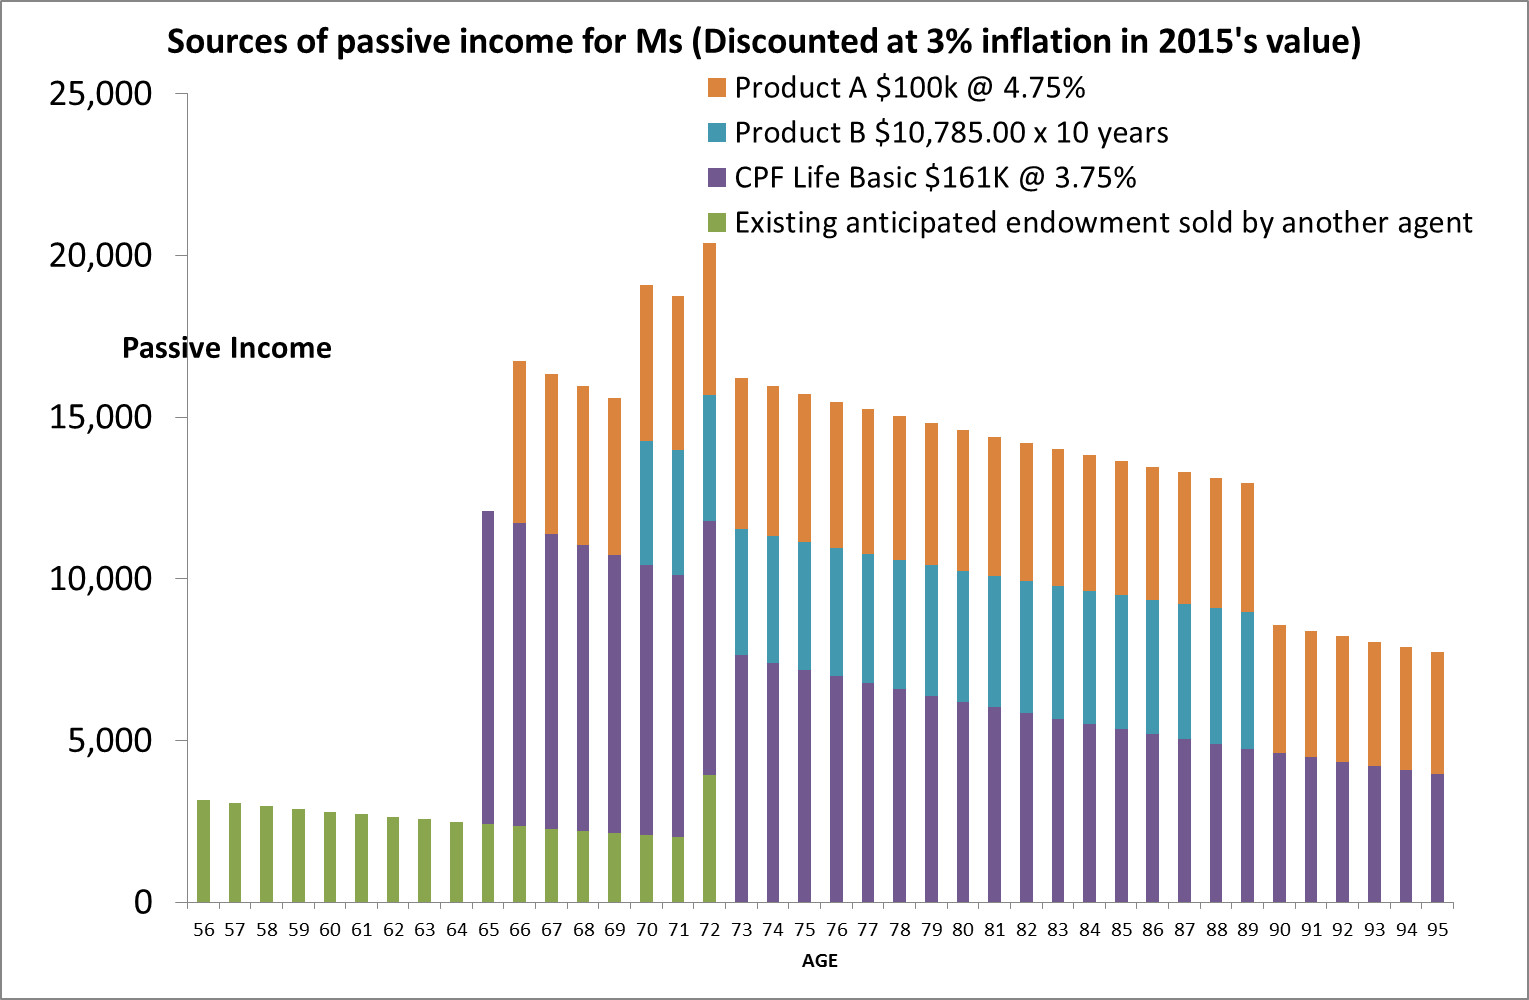 Retirement Planning - Passive Retirement Income for Ms (inflation adjusted)